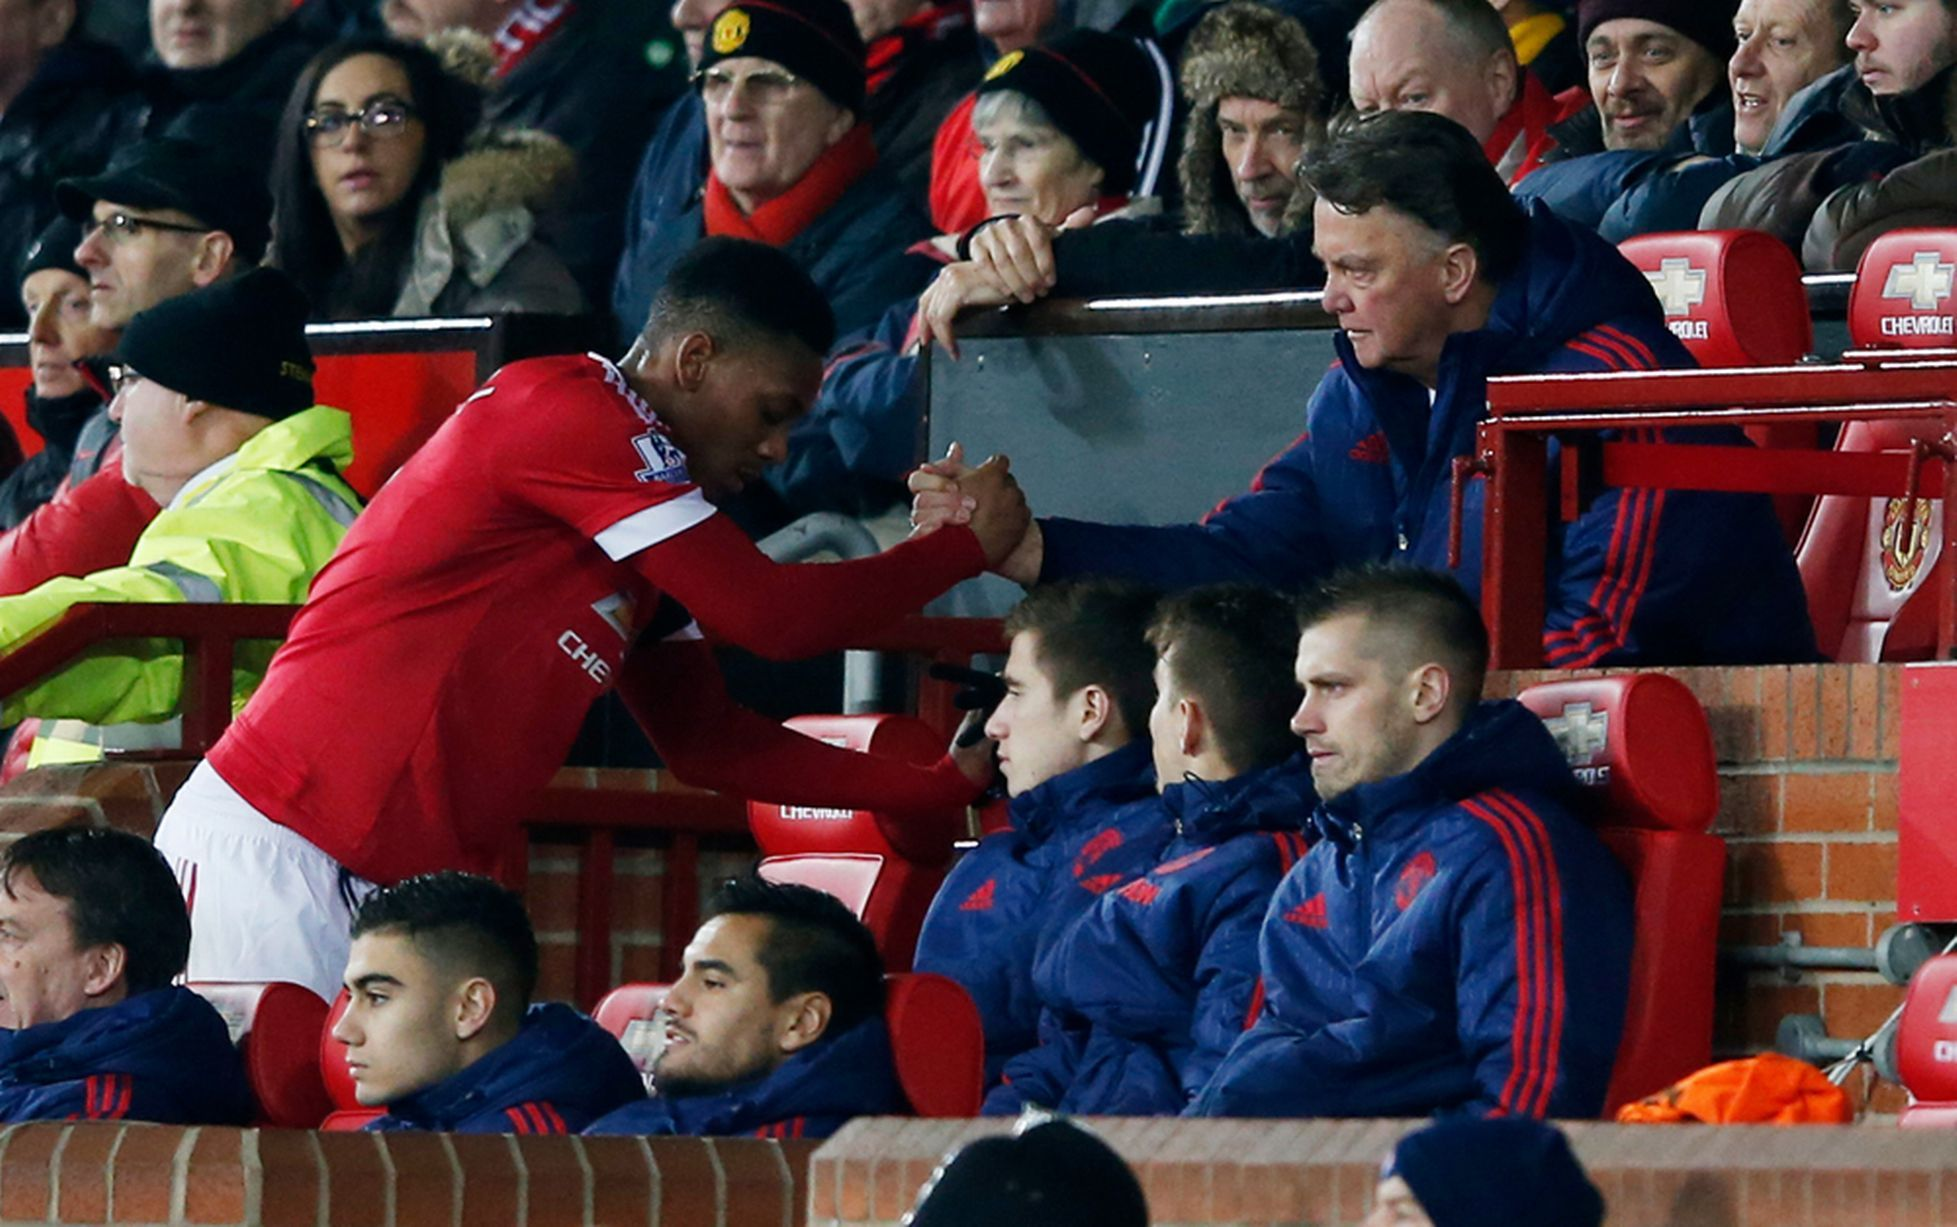 Manchester United's Anthony Martial shakes hands with manager Louis van Gaal as he is substituted